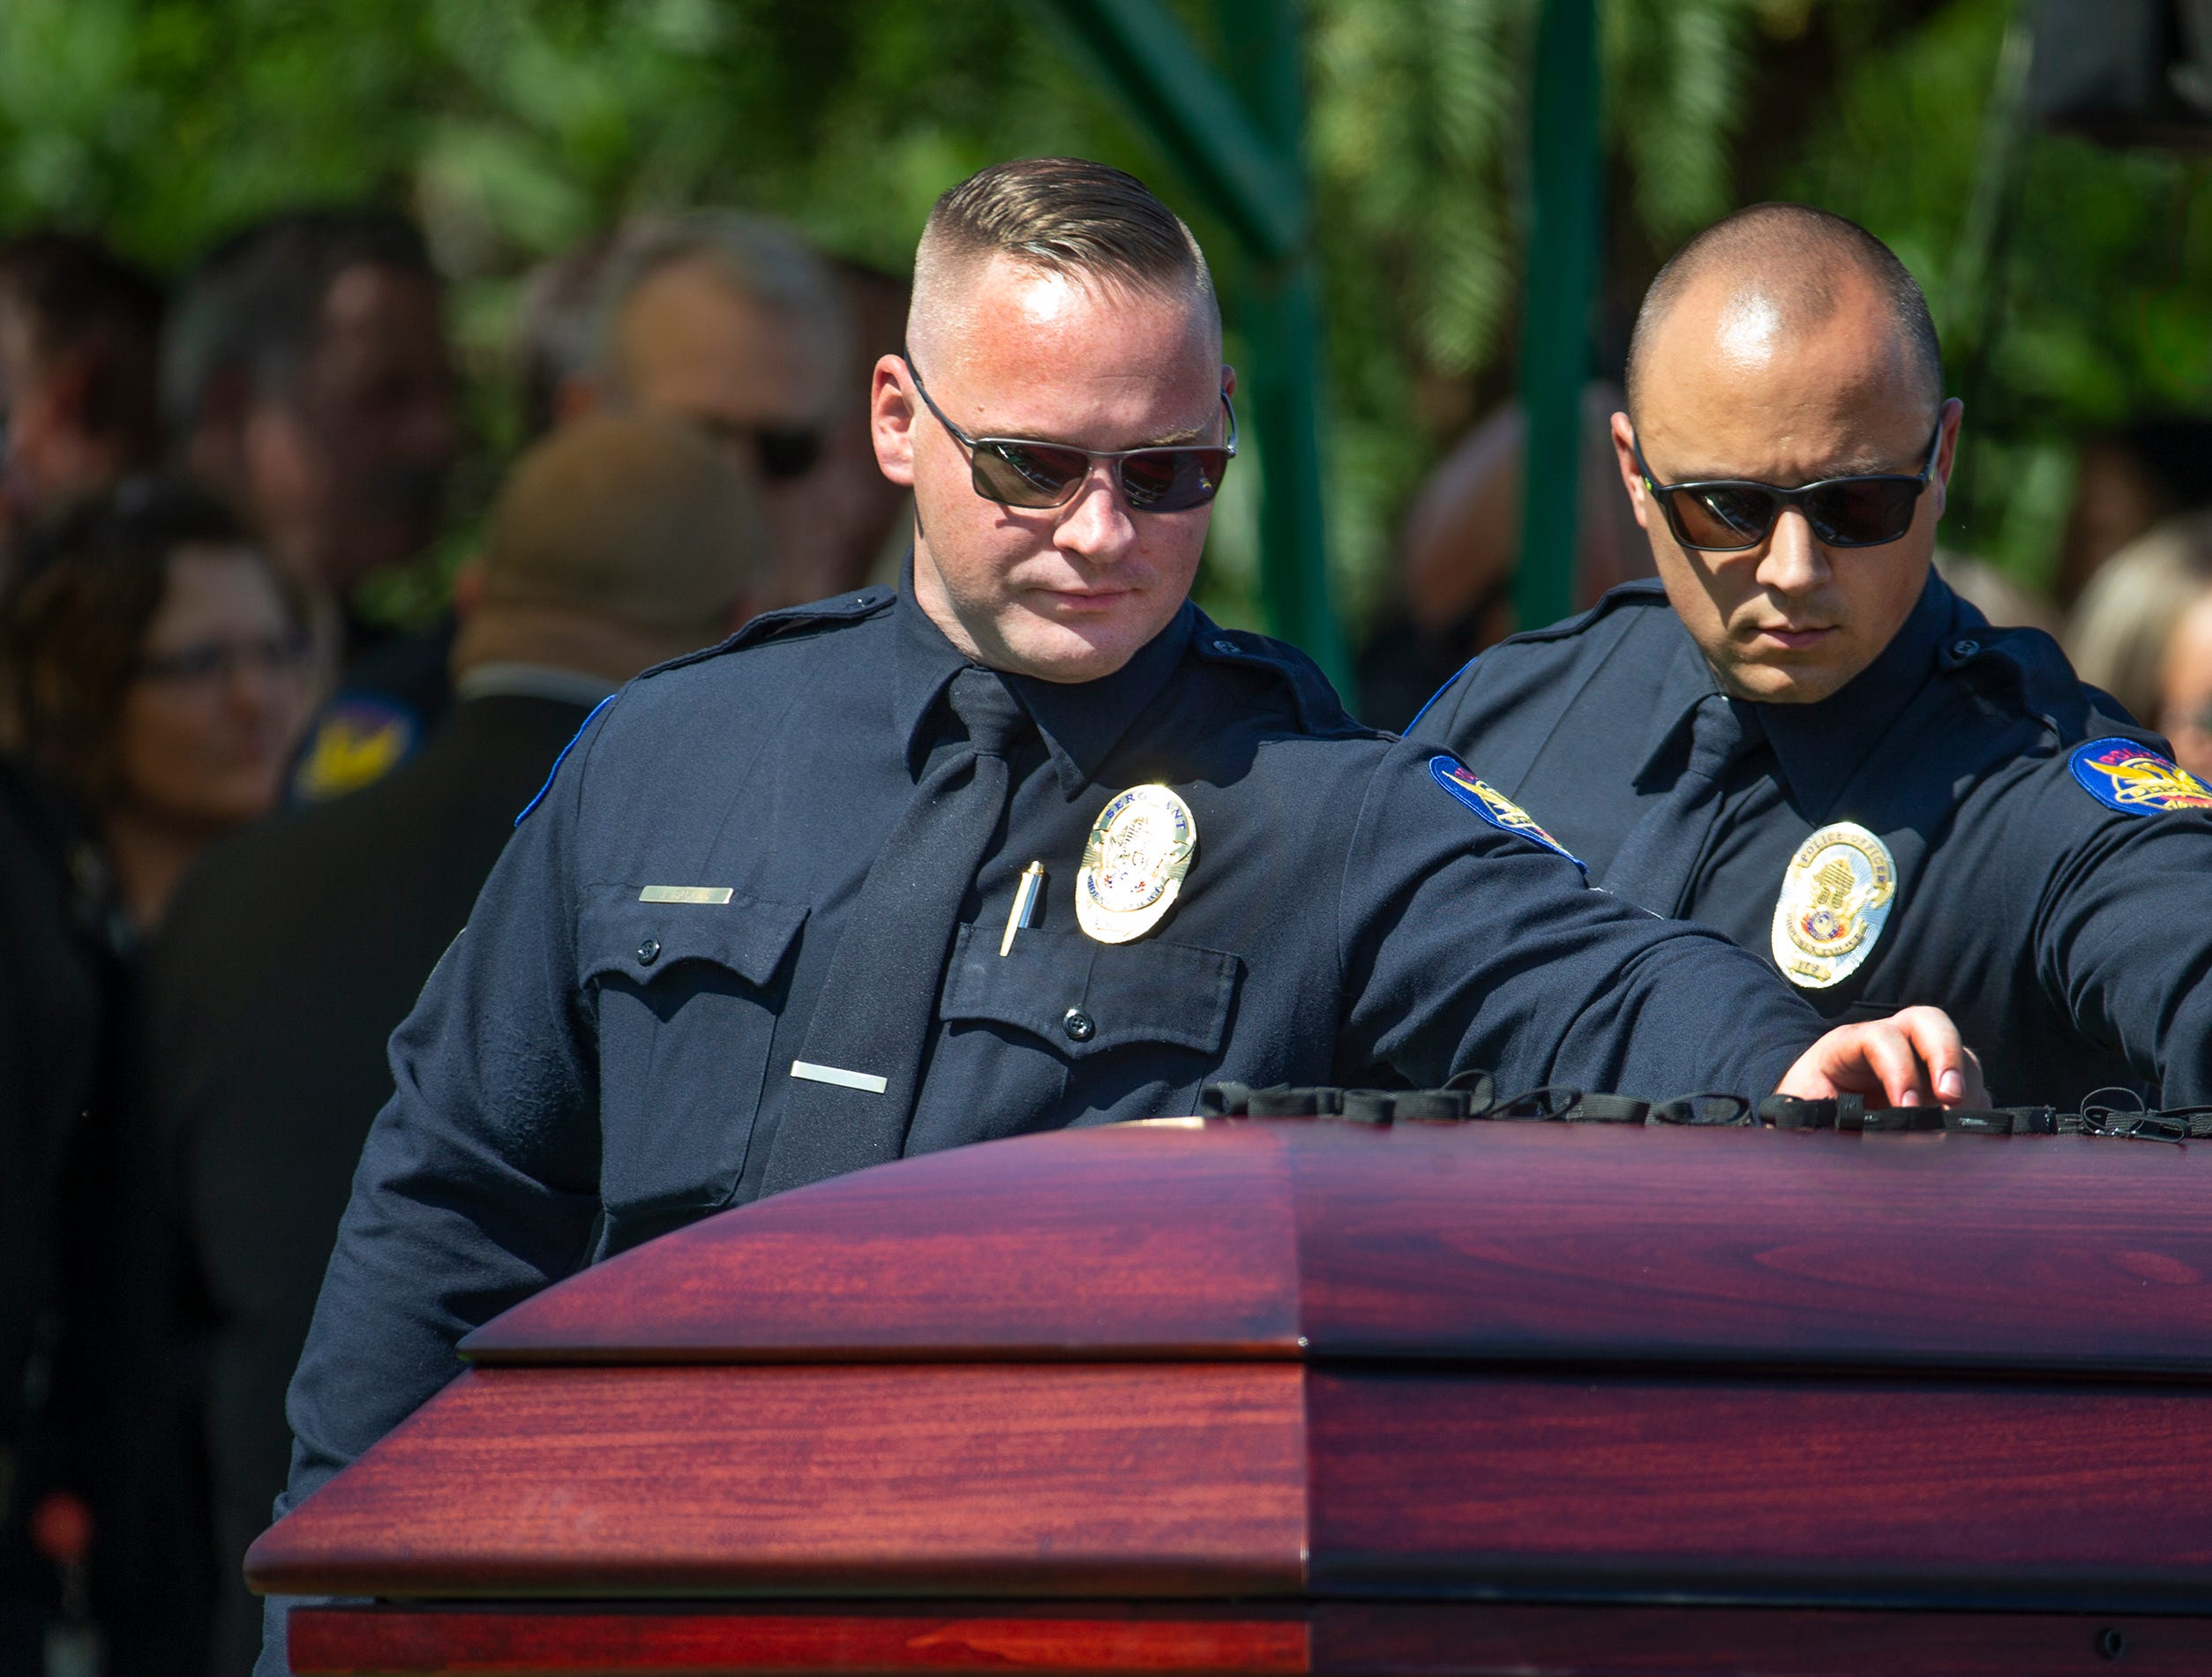 Phoenix police officers place badges atop the casket of Phoenix police Officer Paul Rutherford after graveside services at Phoenix Memorial Cemetery March 28, 2019. Rutherford was killed while investigating the scene of an auto accident in Phoenix.